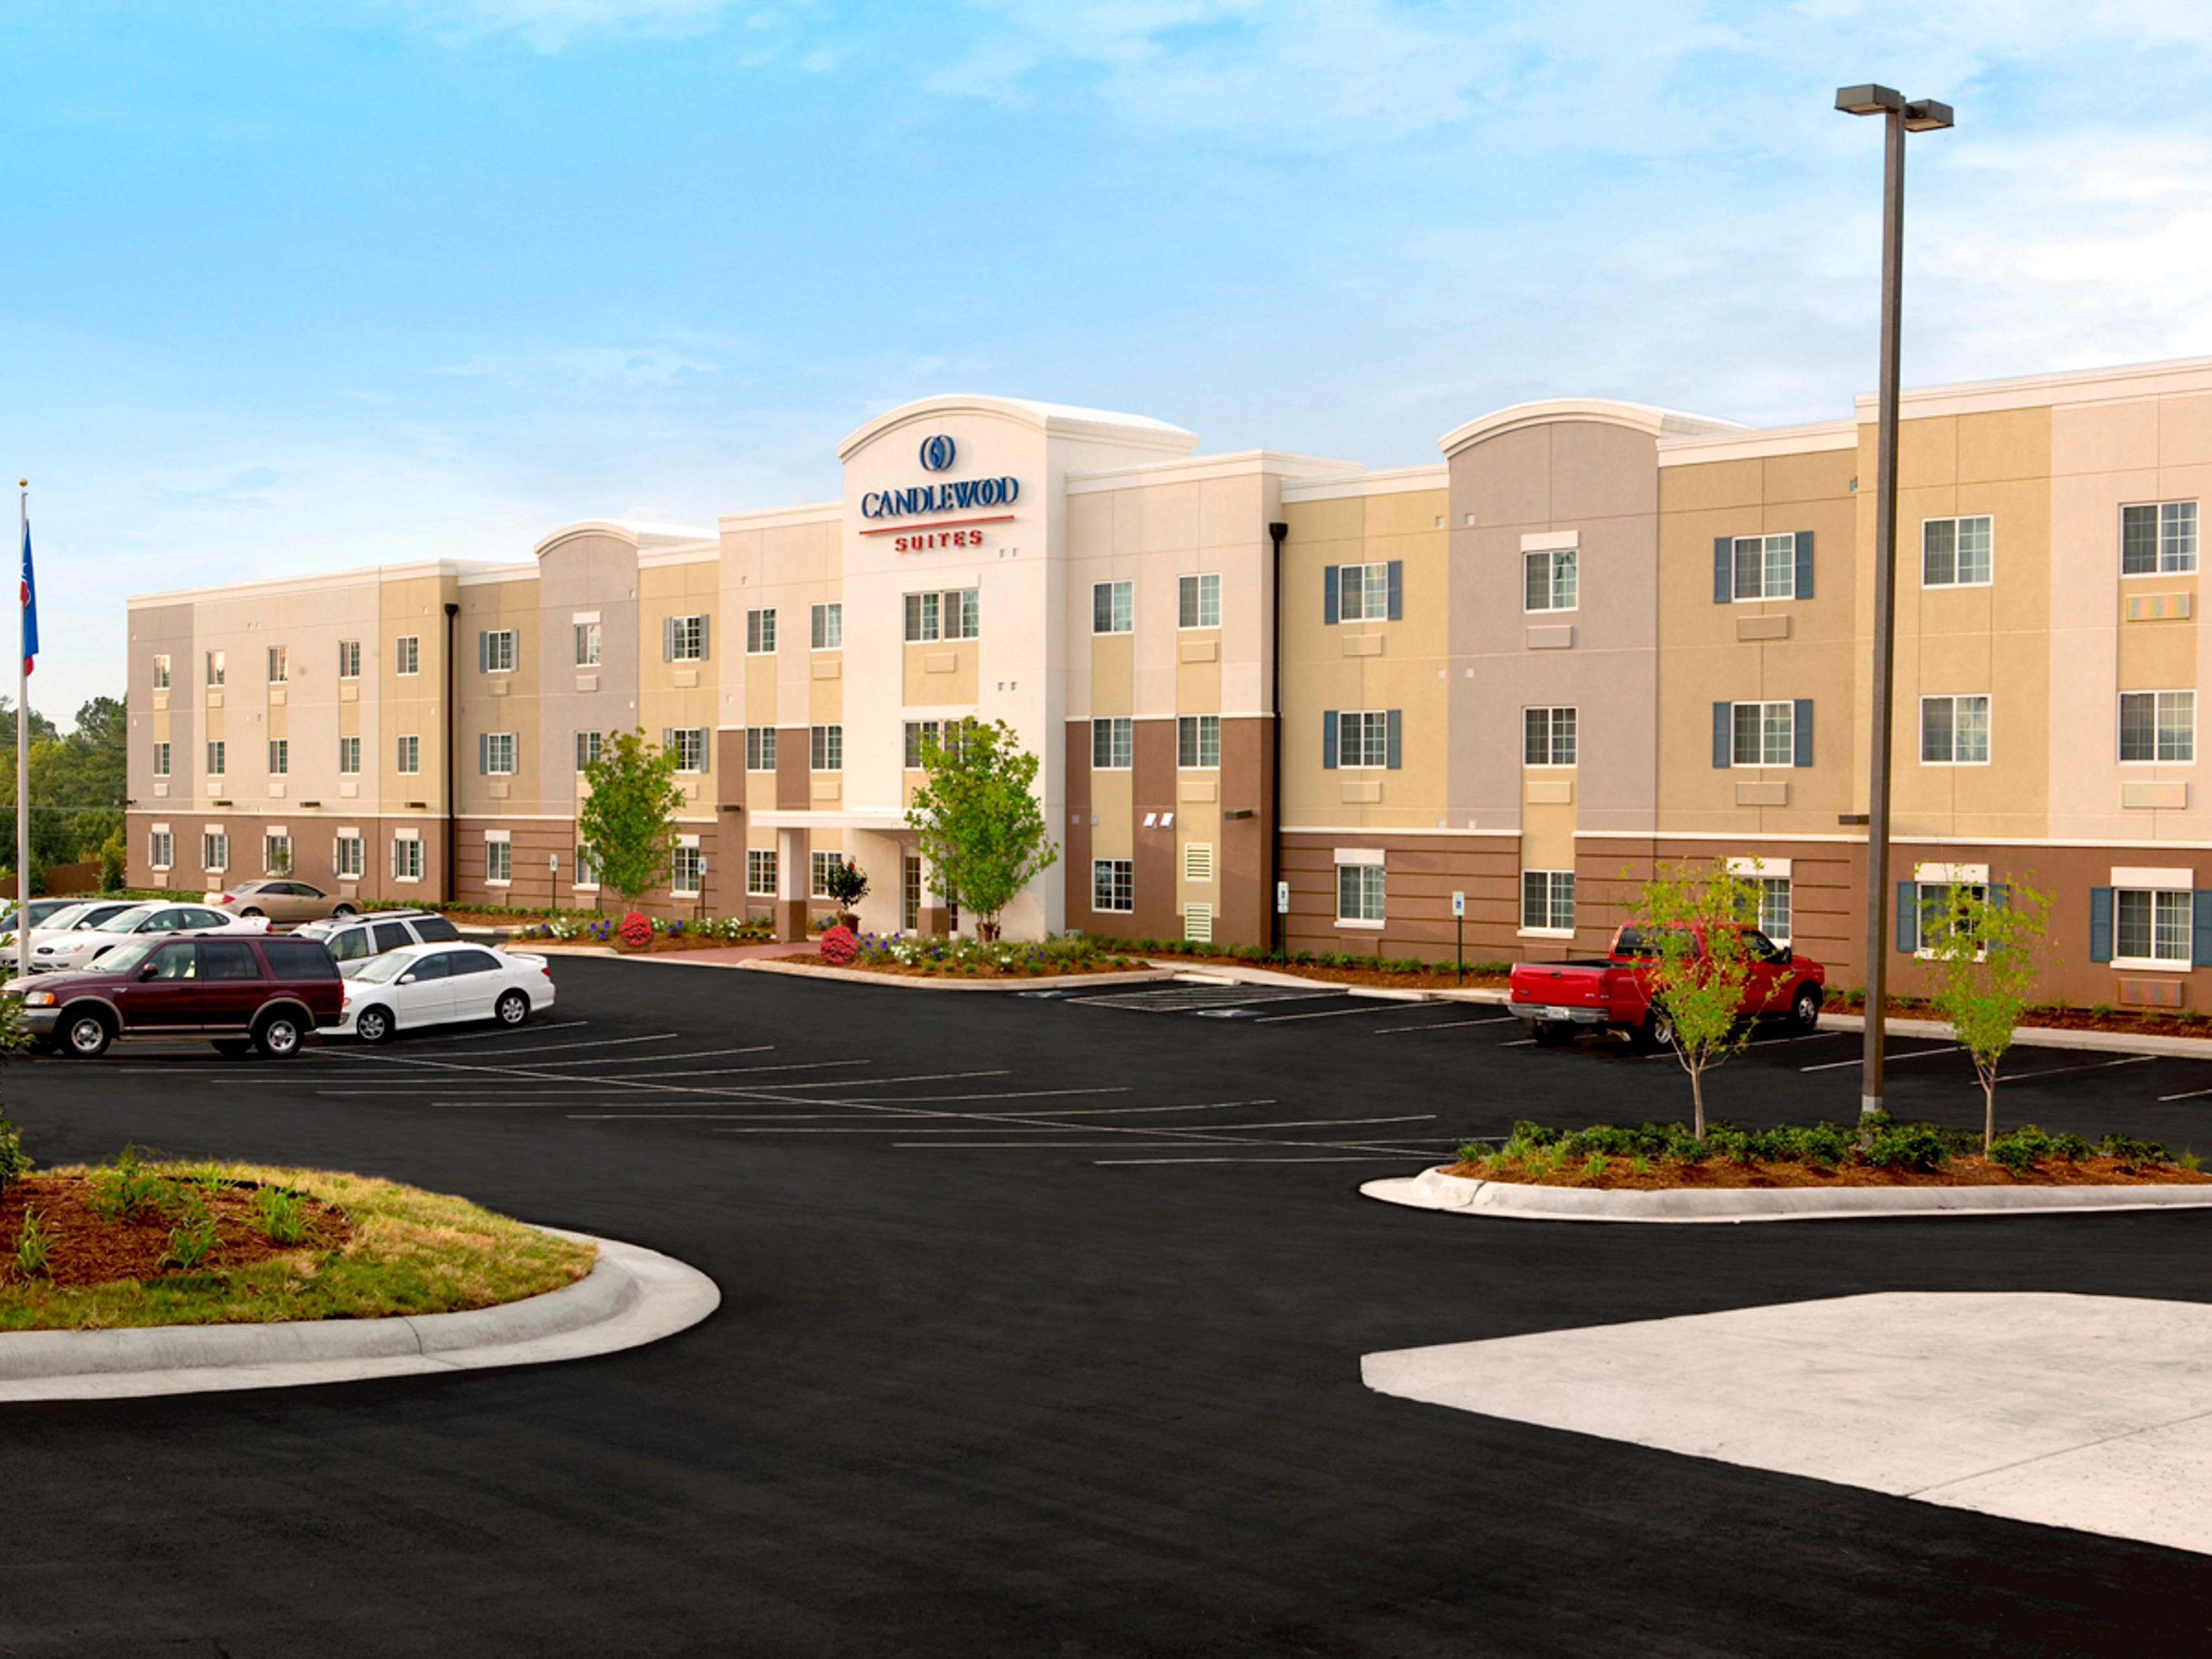 Richfield Hotels Candlewood Suites Minneapolis Extended Stay Hotel In Minnesota